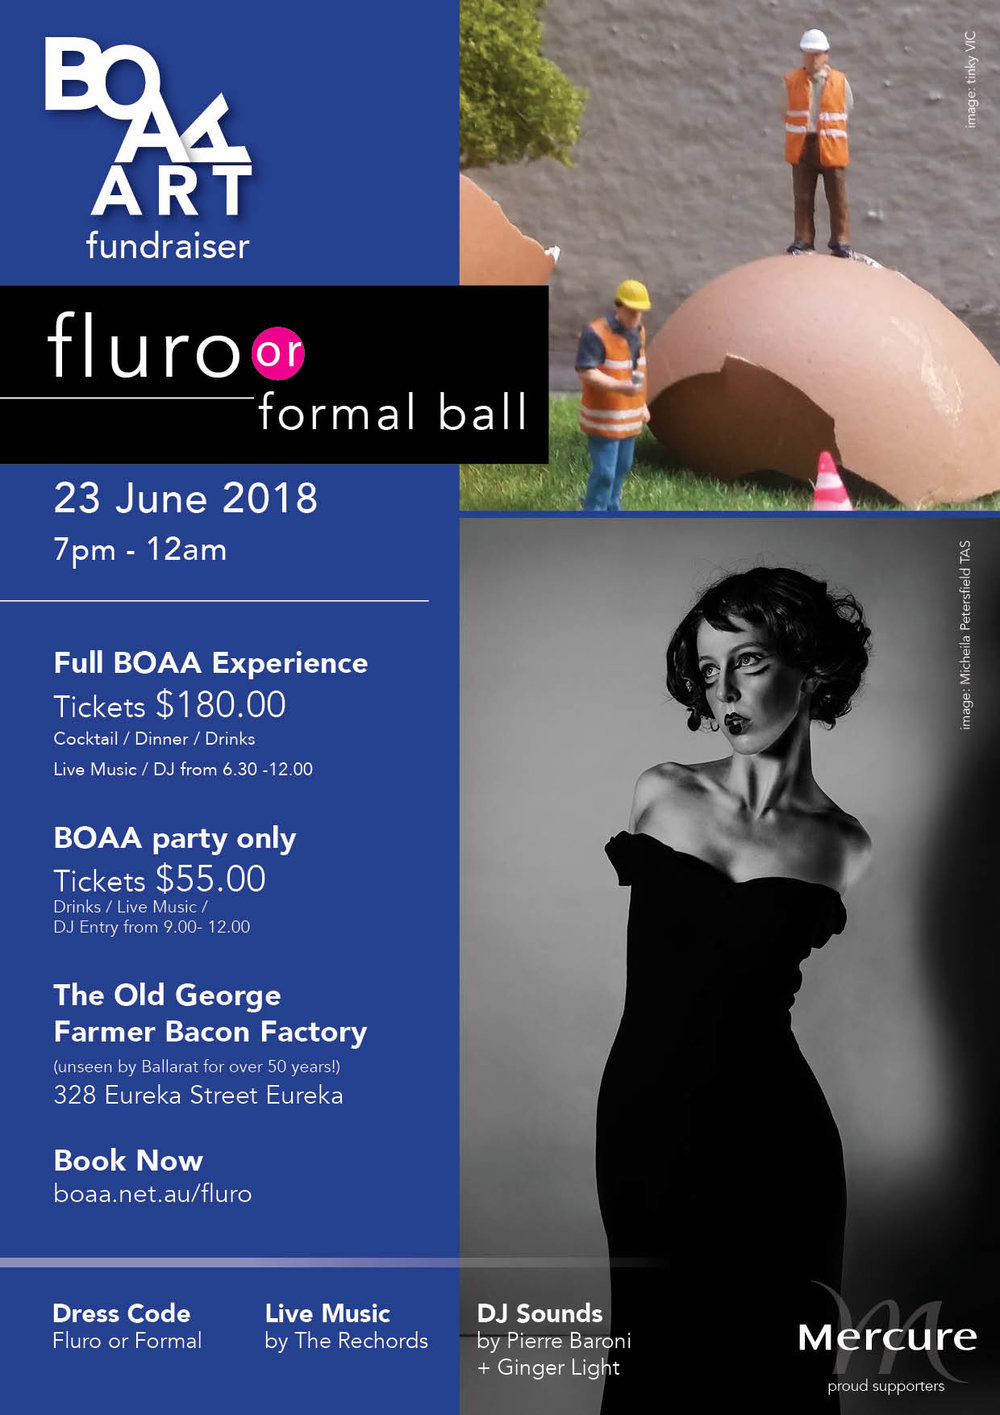 BOAA-fluro-ball-2018-poster-FINAL2.jpg